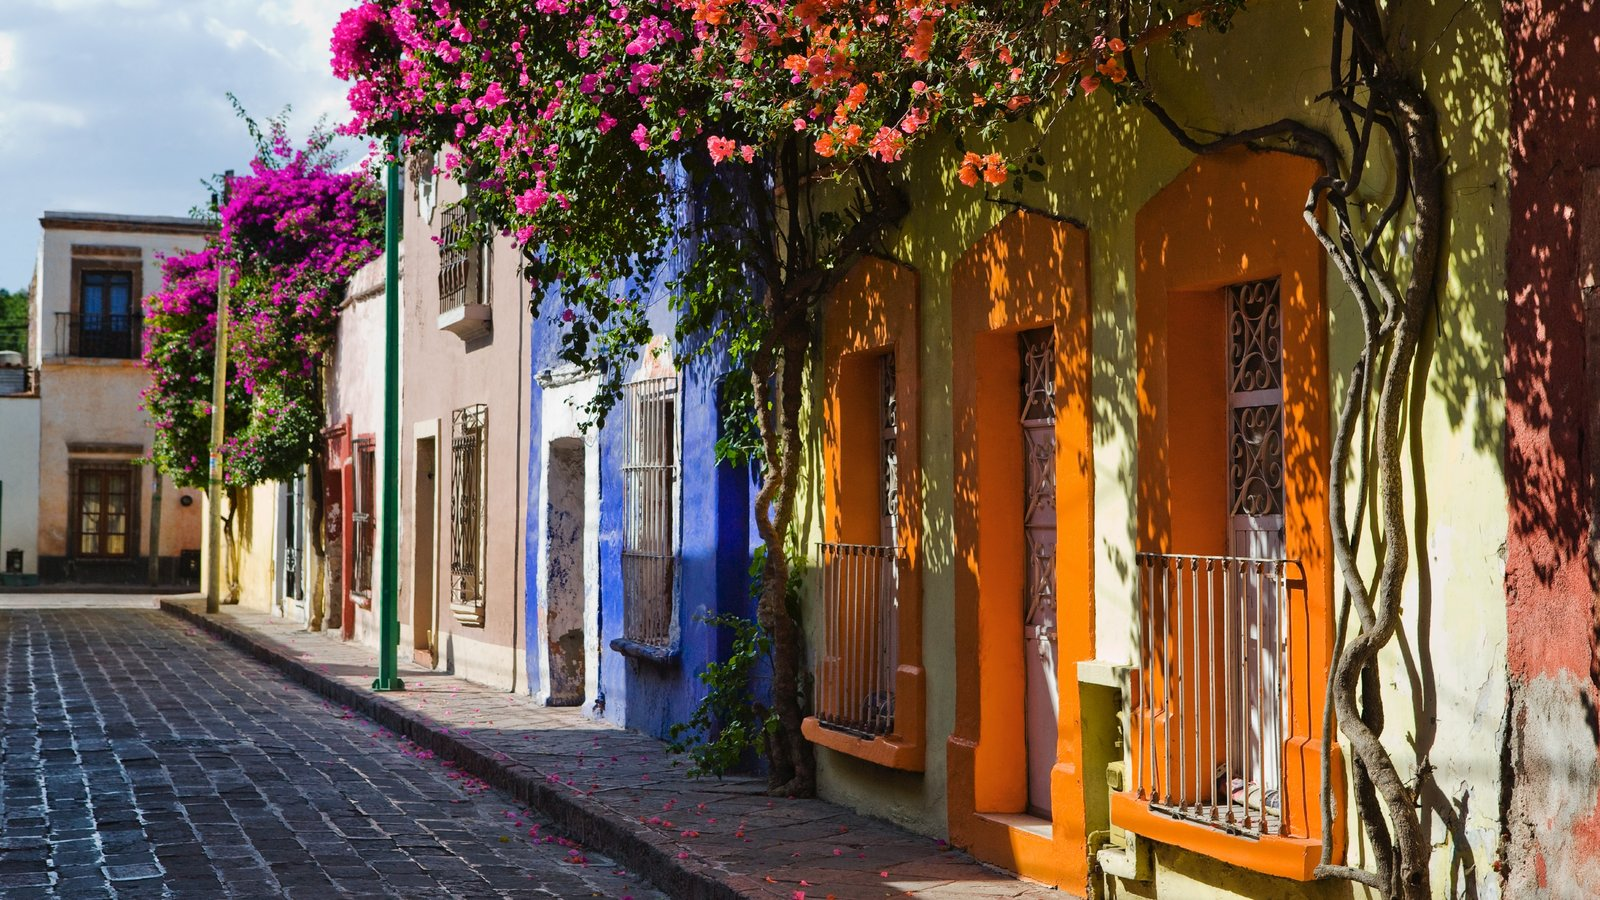 Queretaro featuring flowers, heritage architecture and street scenes